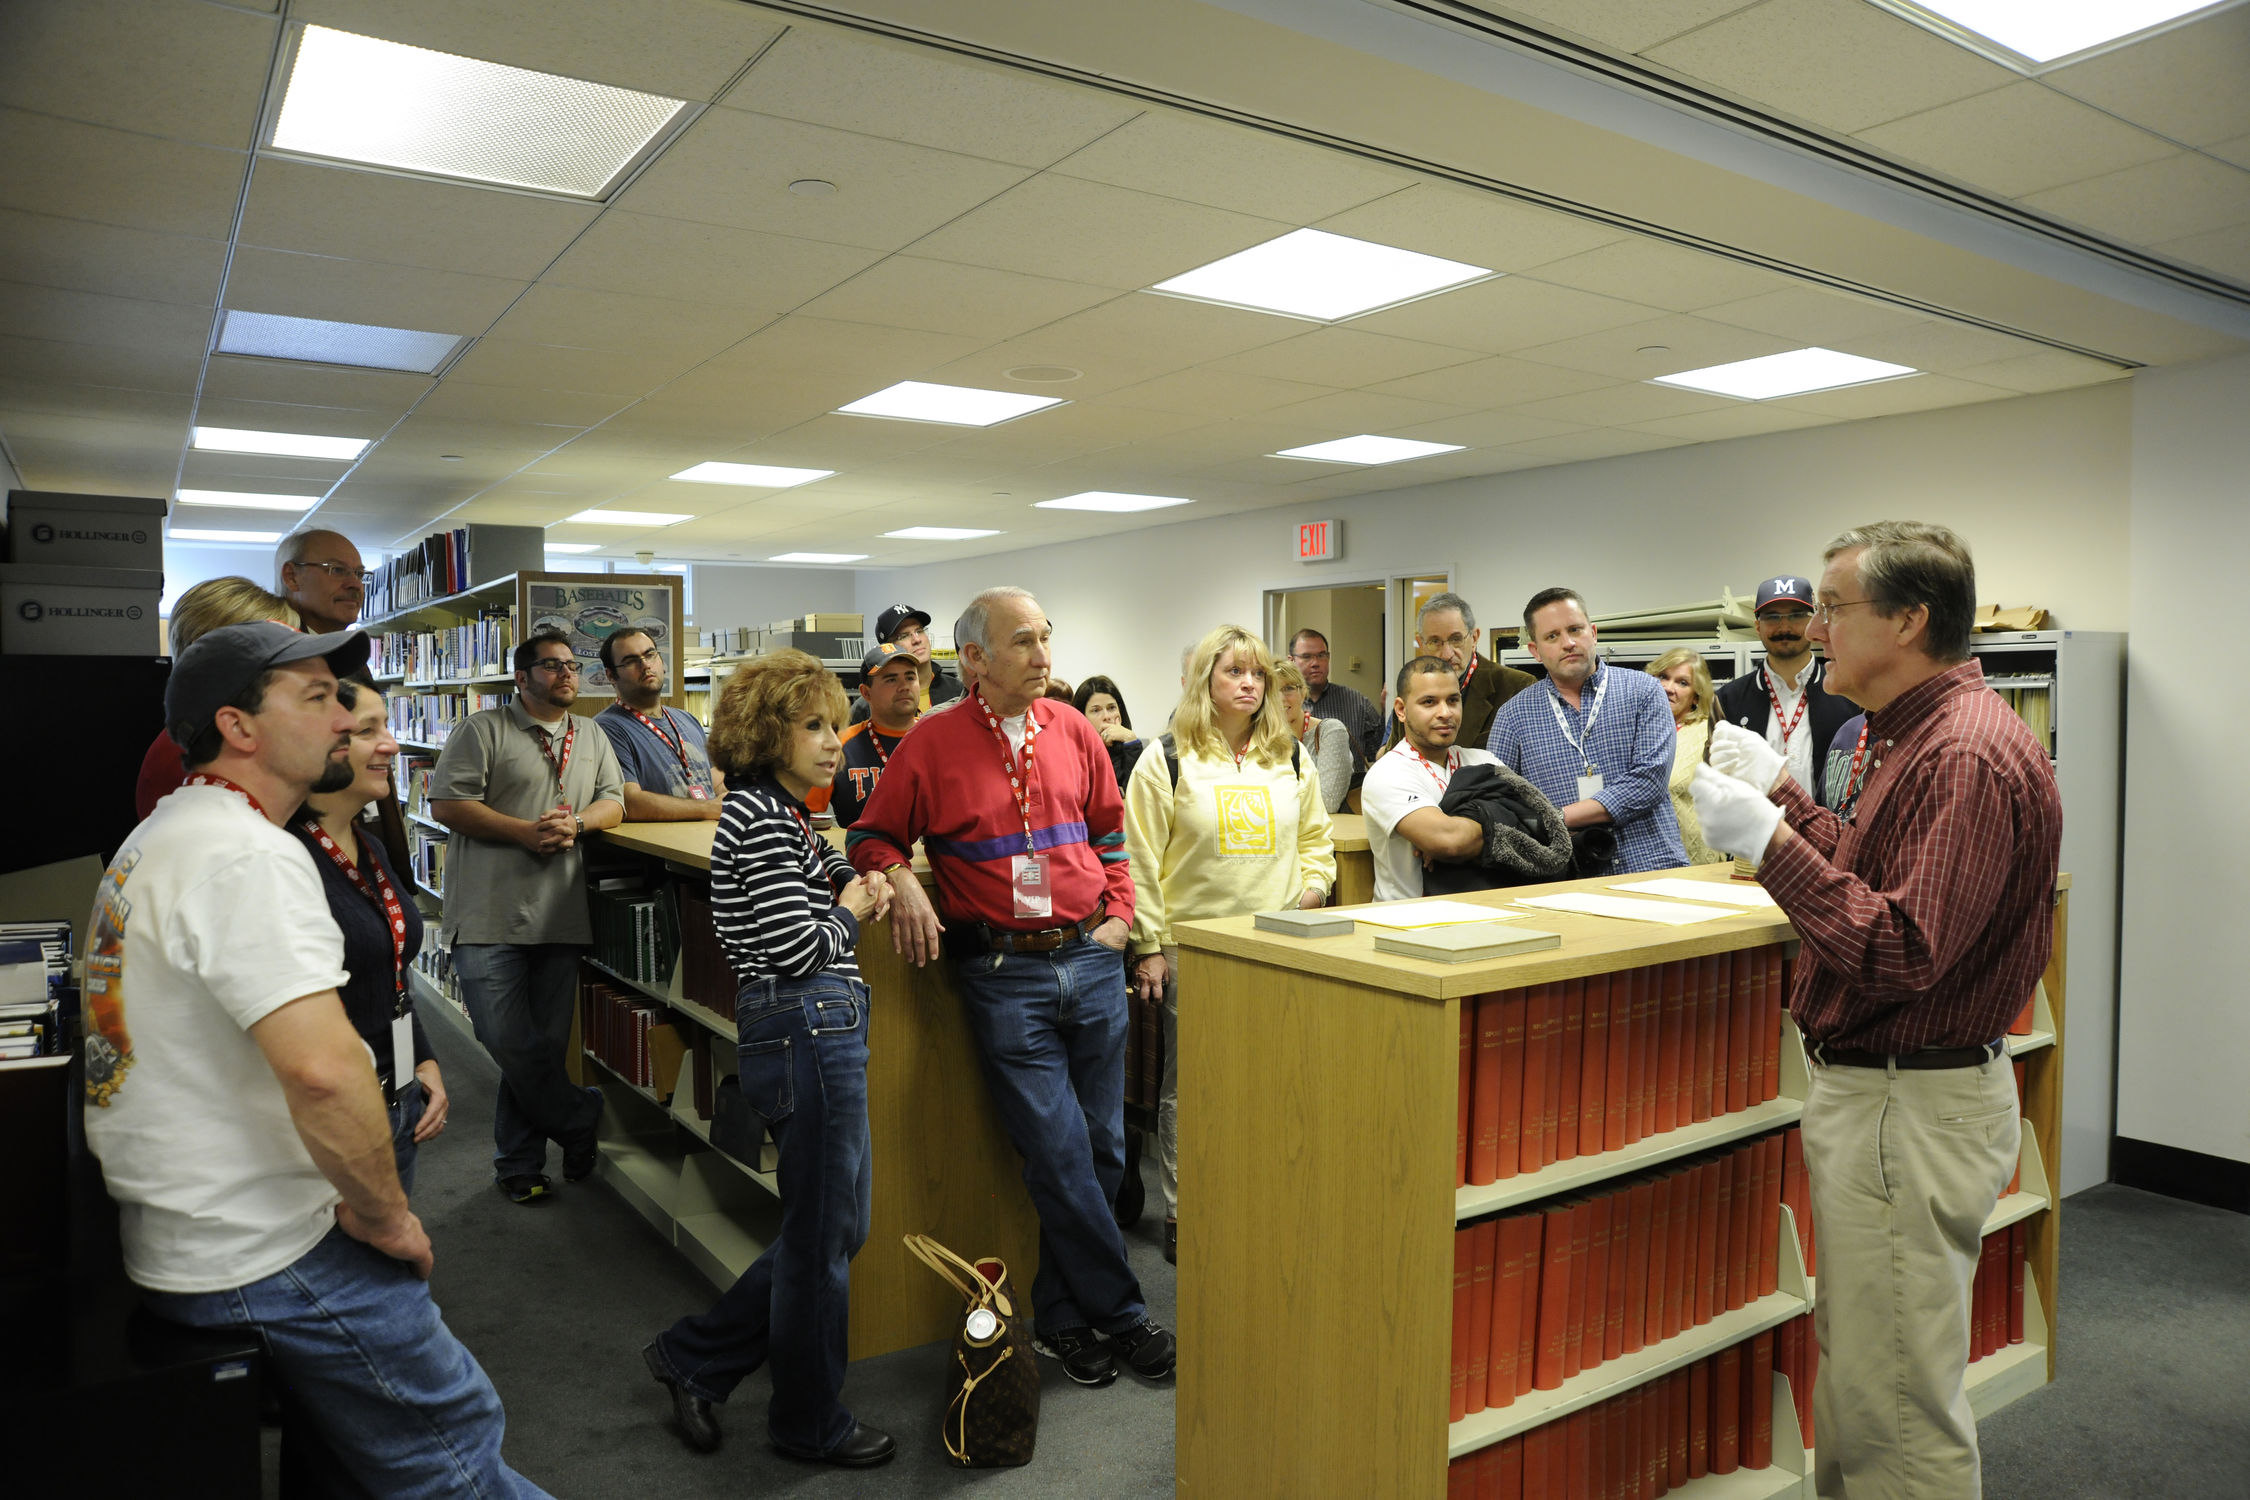 Hall Of Fame Librarian Jim Gates Gives VIP Experience Guests A Tour The Museums Giamatti